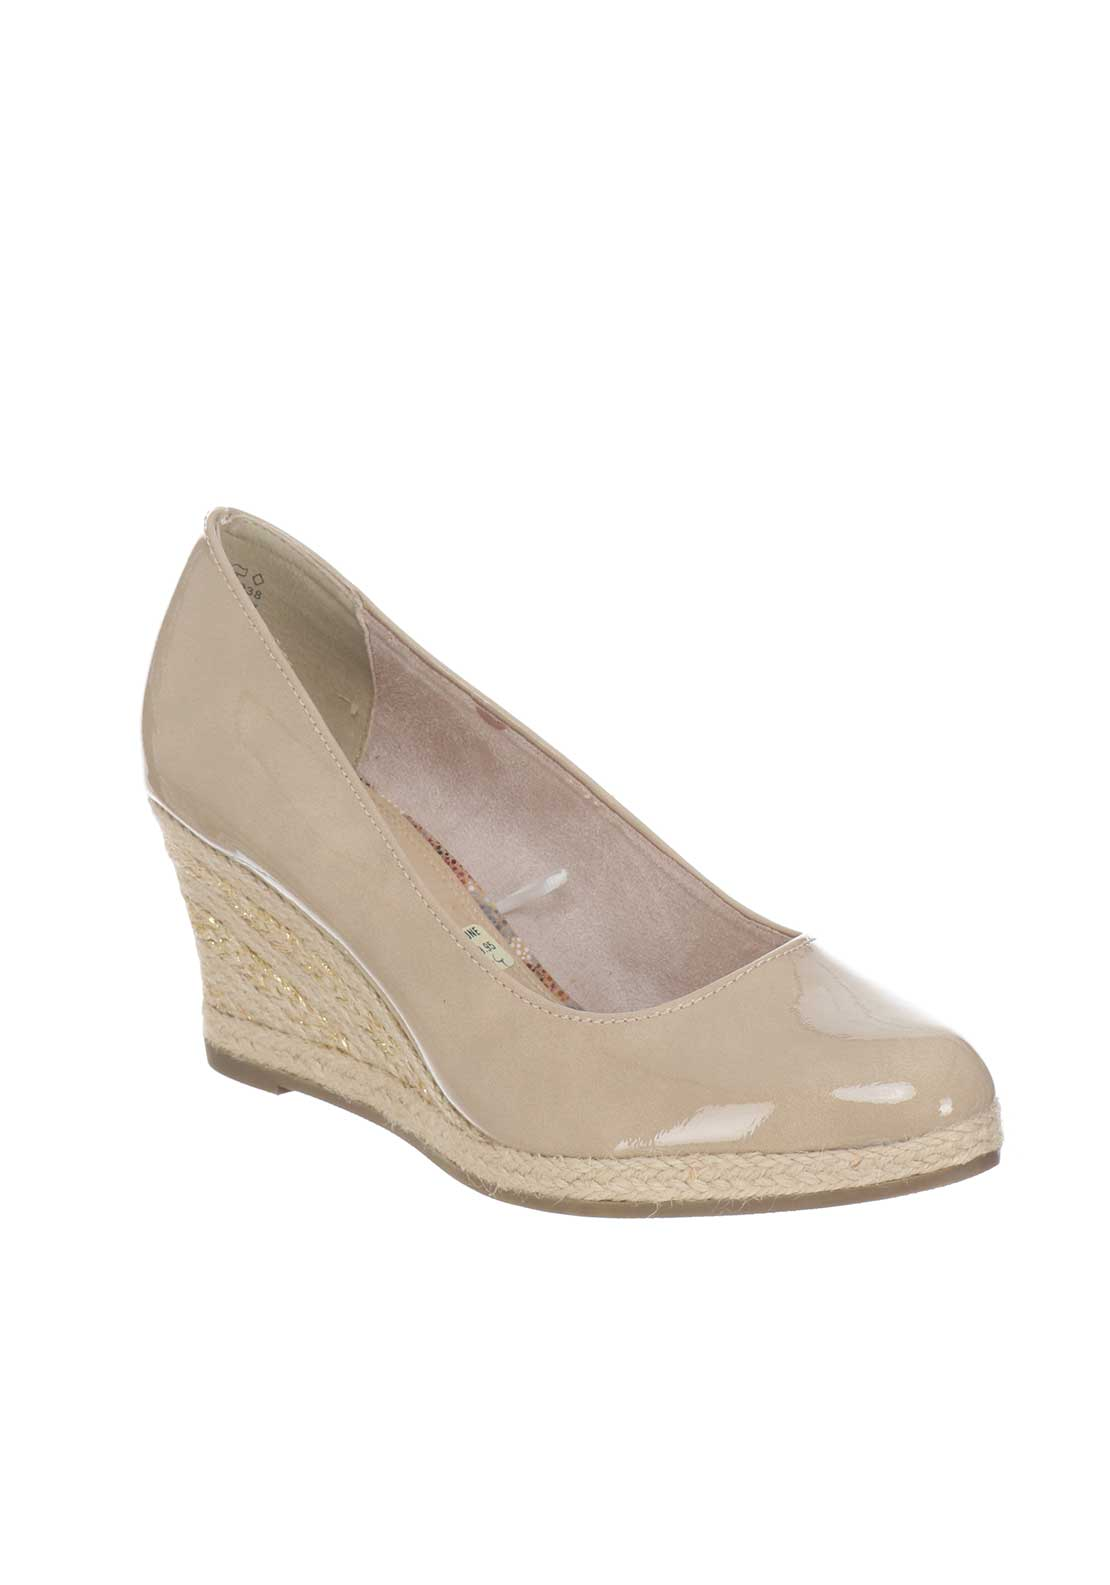 Marco Tozzi Perforated Peep Toe Wedged Shoes, Nude